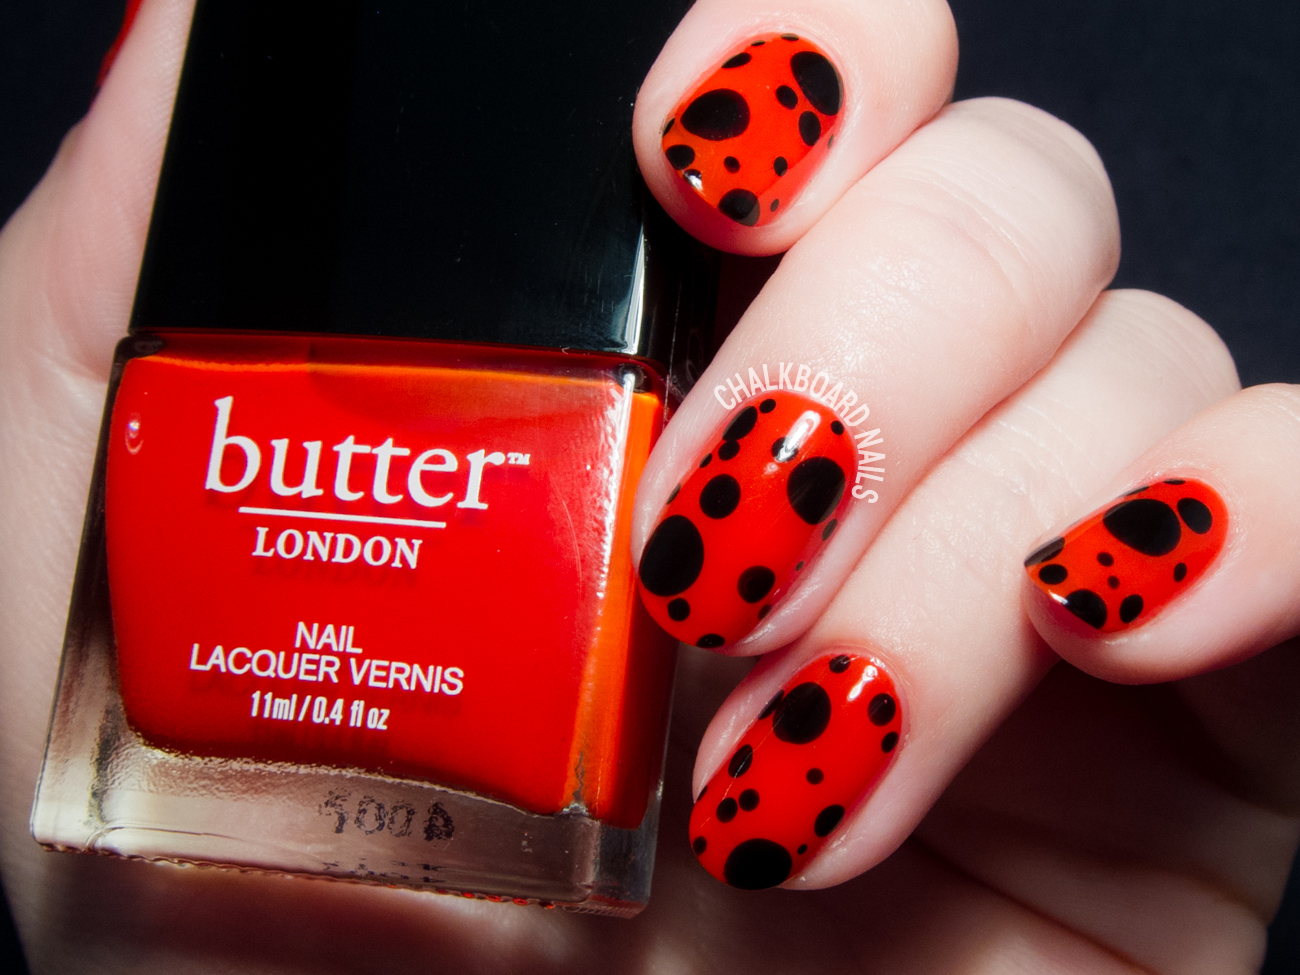 Easy ladybird inspired nail art by @chalkboardnails